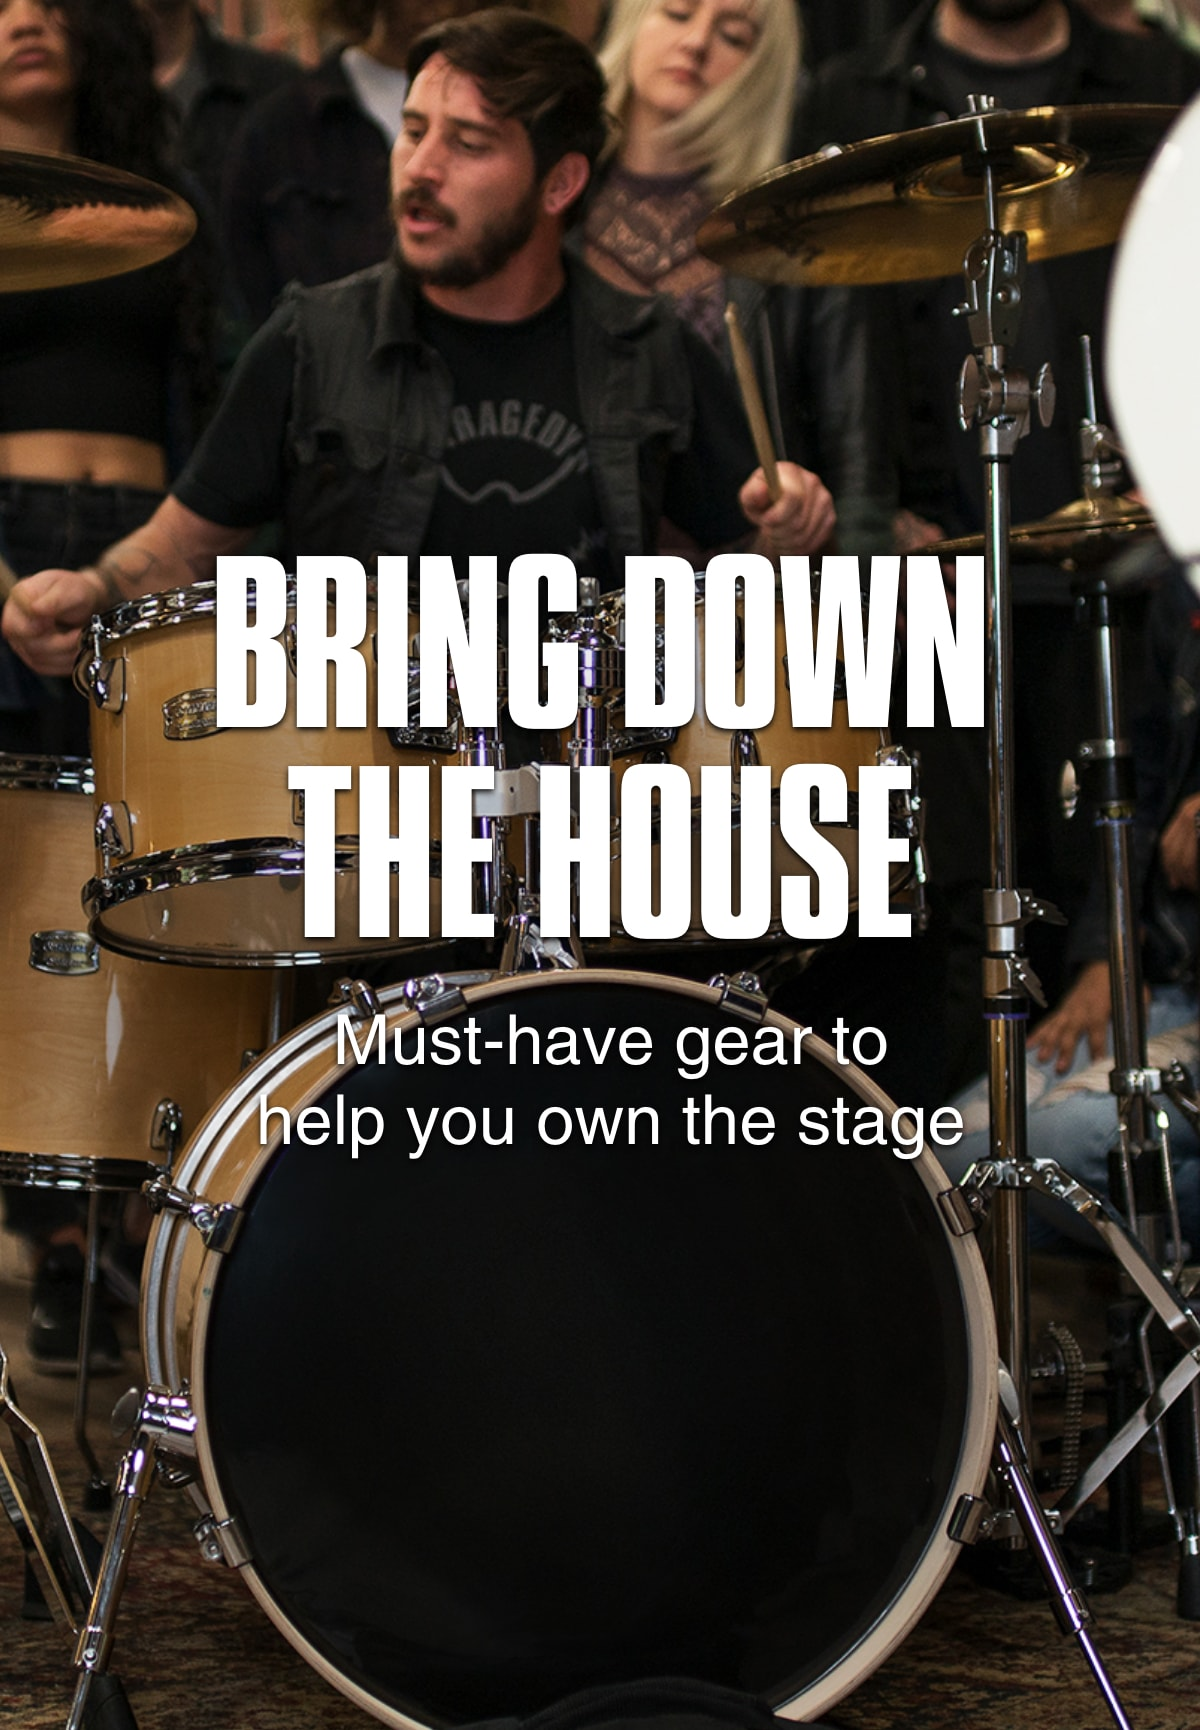 Bring down the house. Must have gear to help you own the stage.